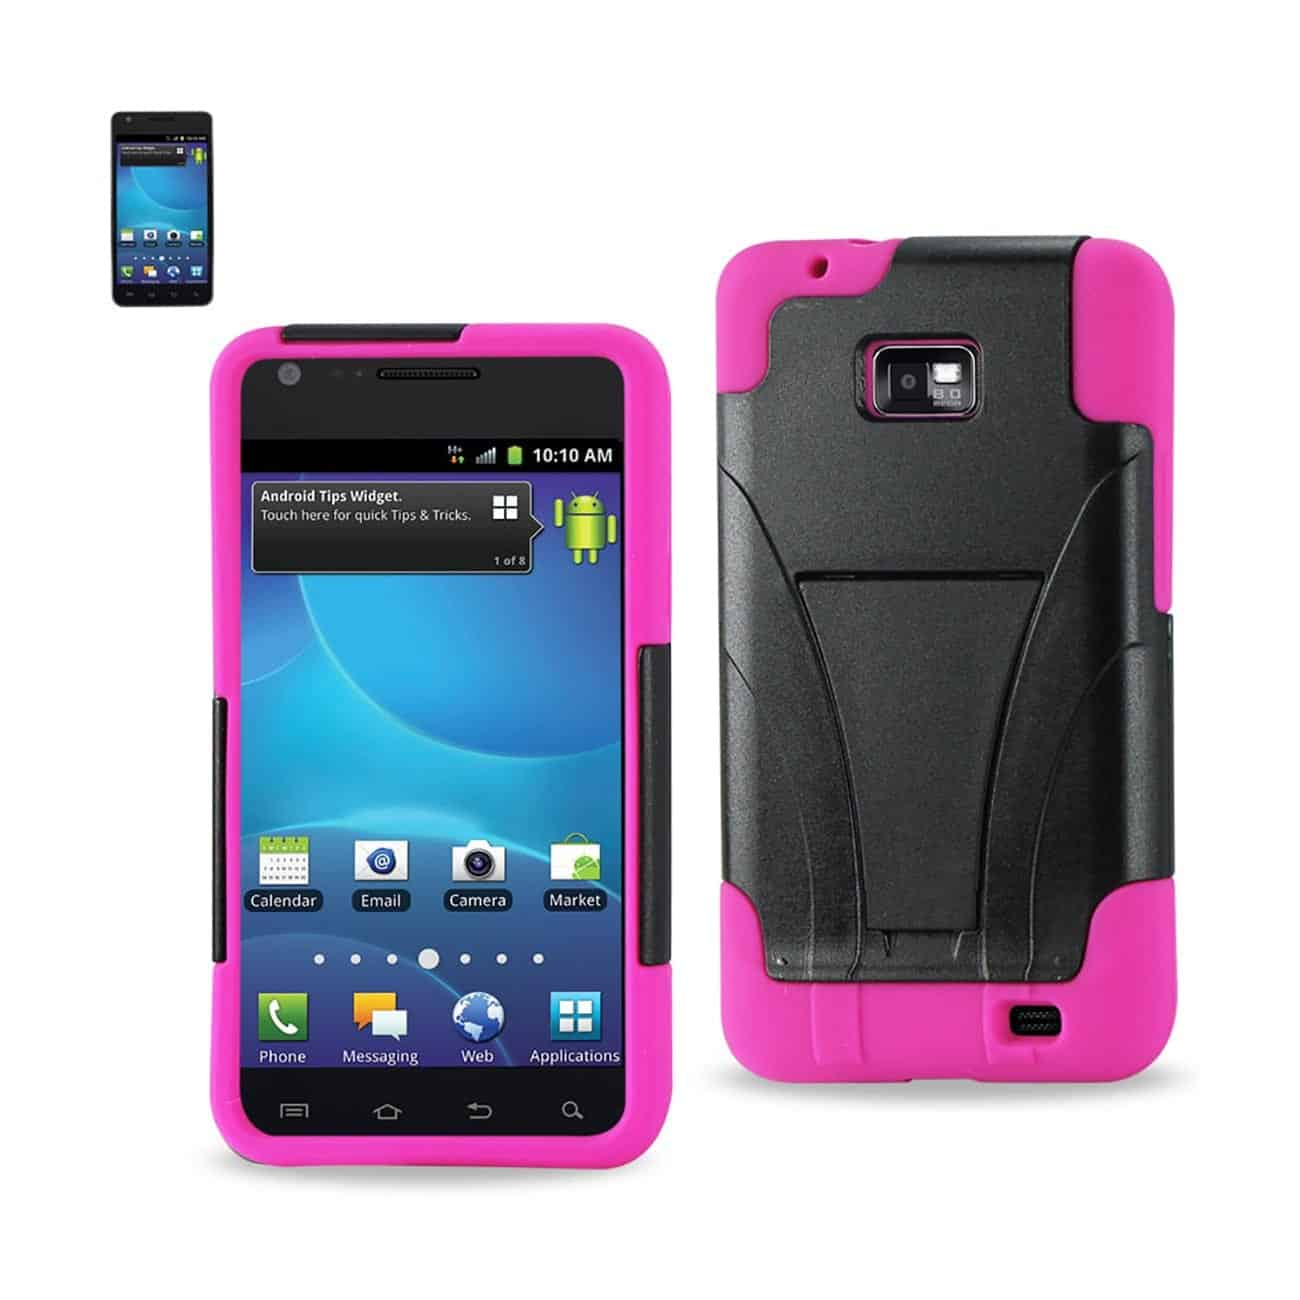 SAMSUNG GALAXY S2 HYBRID HEAVY DUTY CASE WITH KICKSTAND IN HOT PINK BLACK